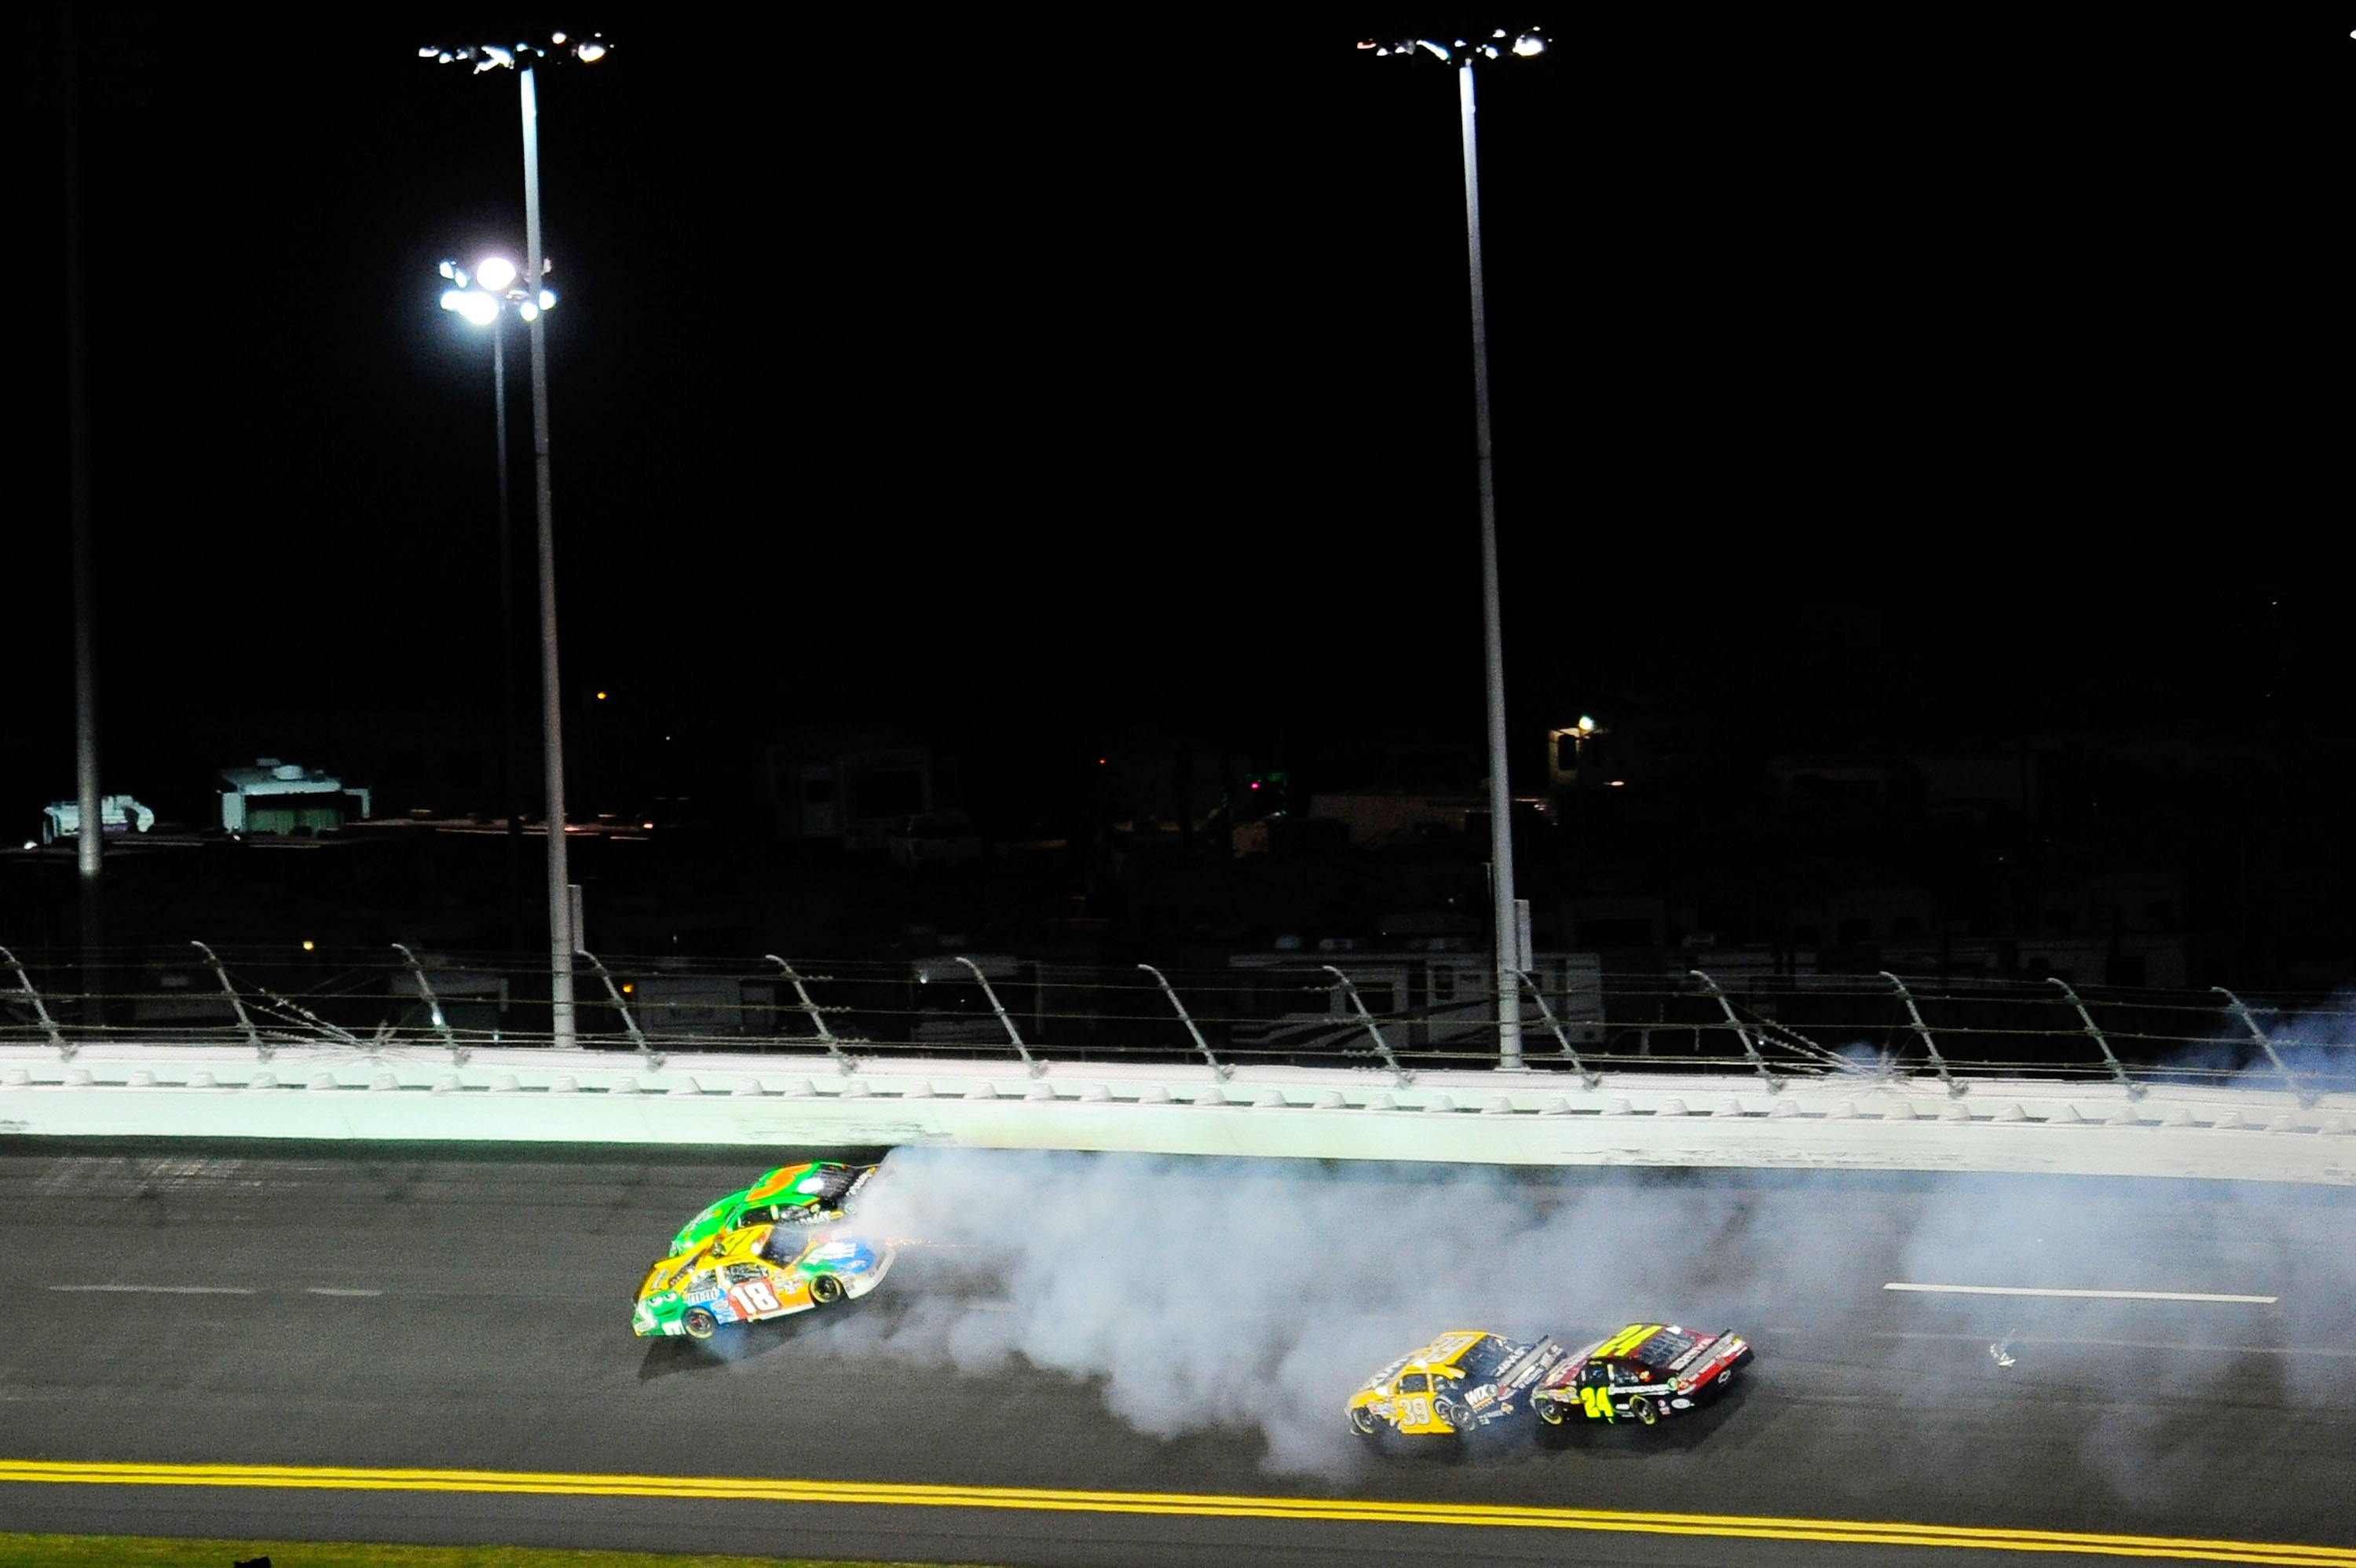 Kyle Busch met his demise with Mark Martin as they failed bump drafting in the turn at Daytona.